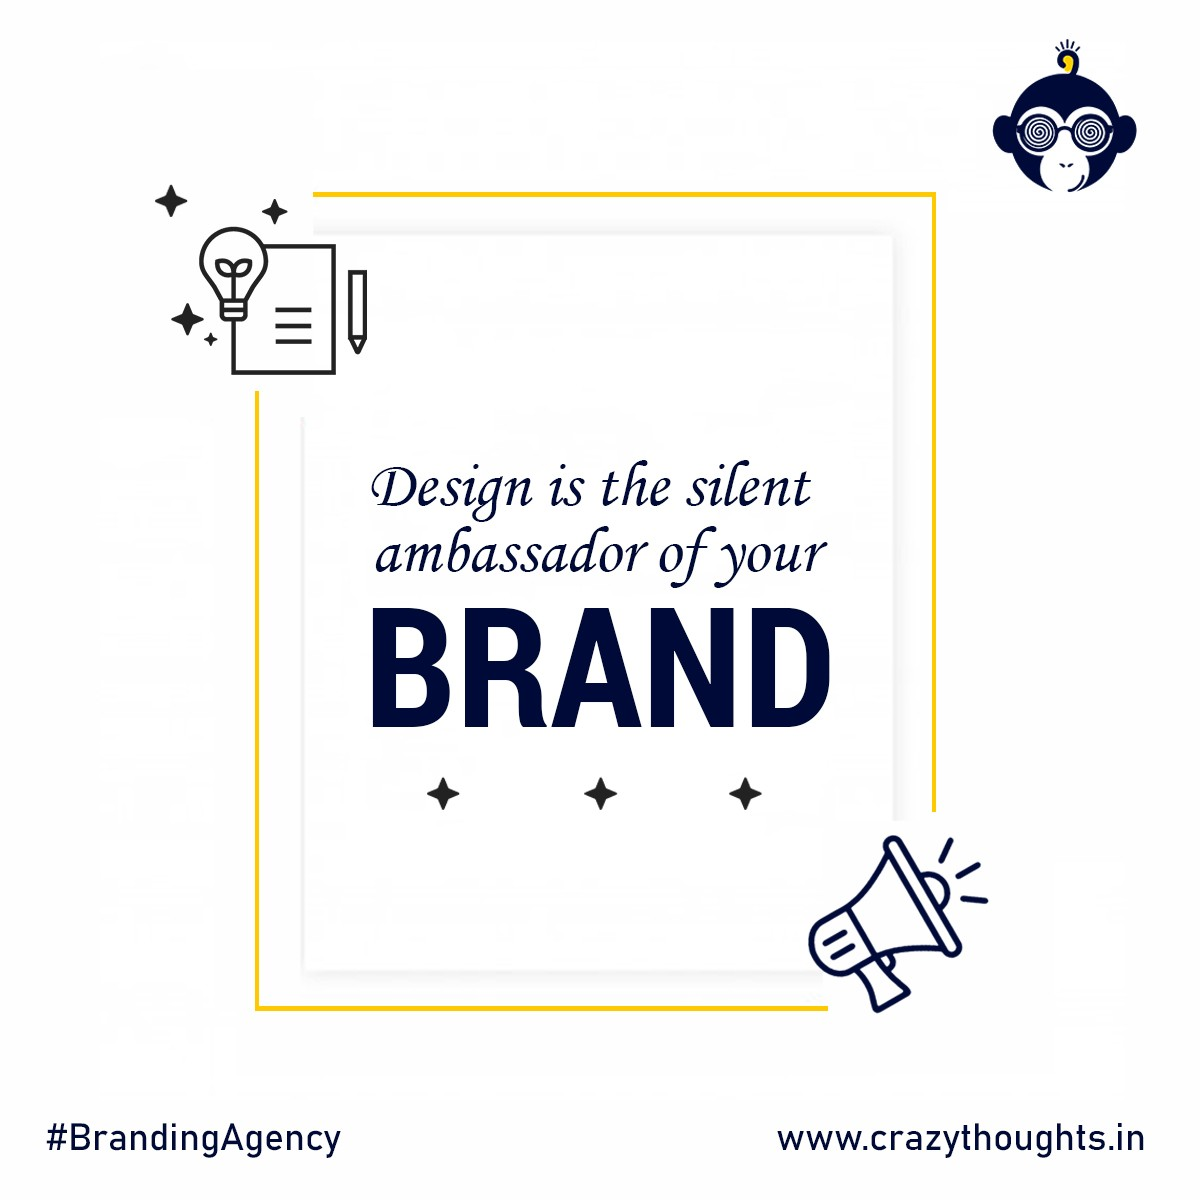 Crazy Thoughts and Branding Pvt Ltd